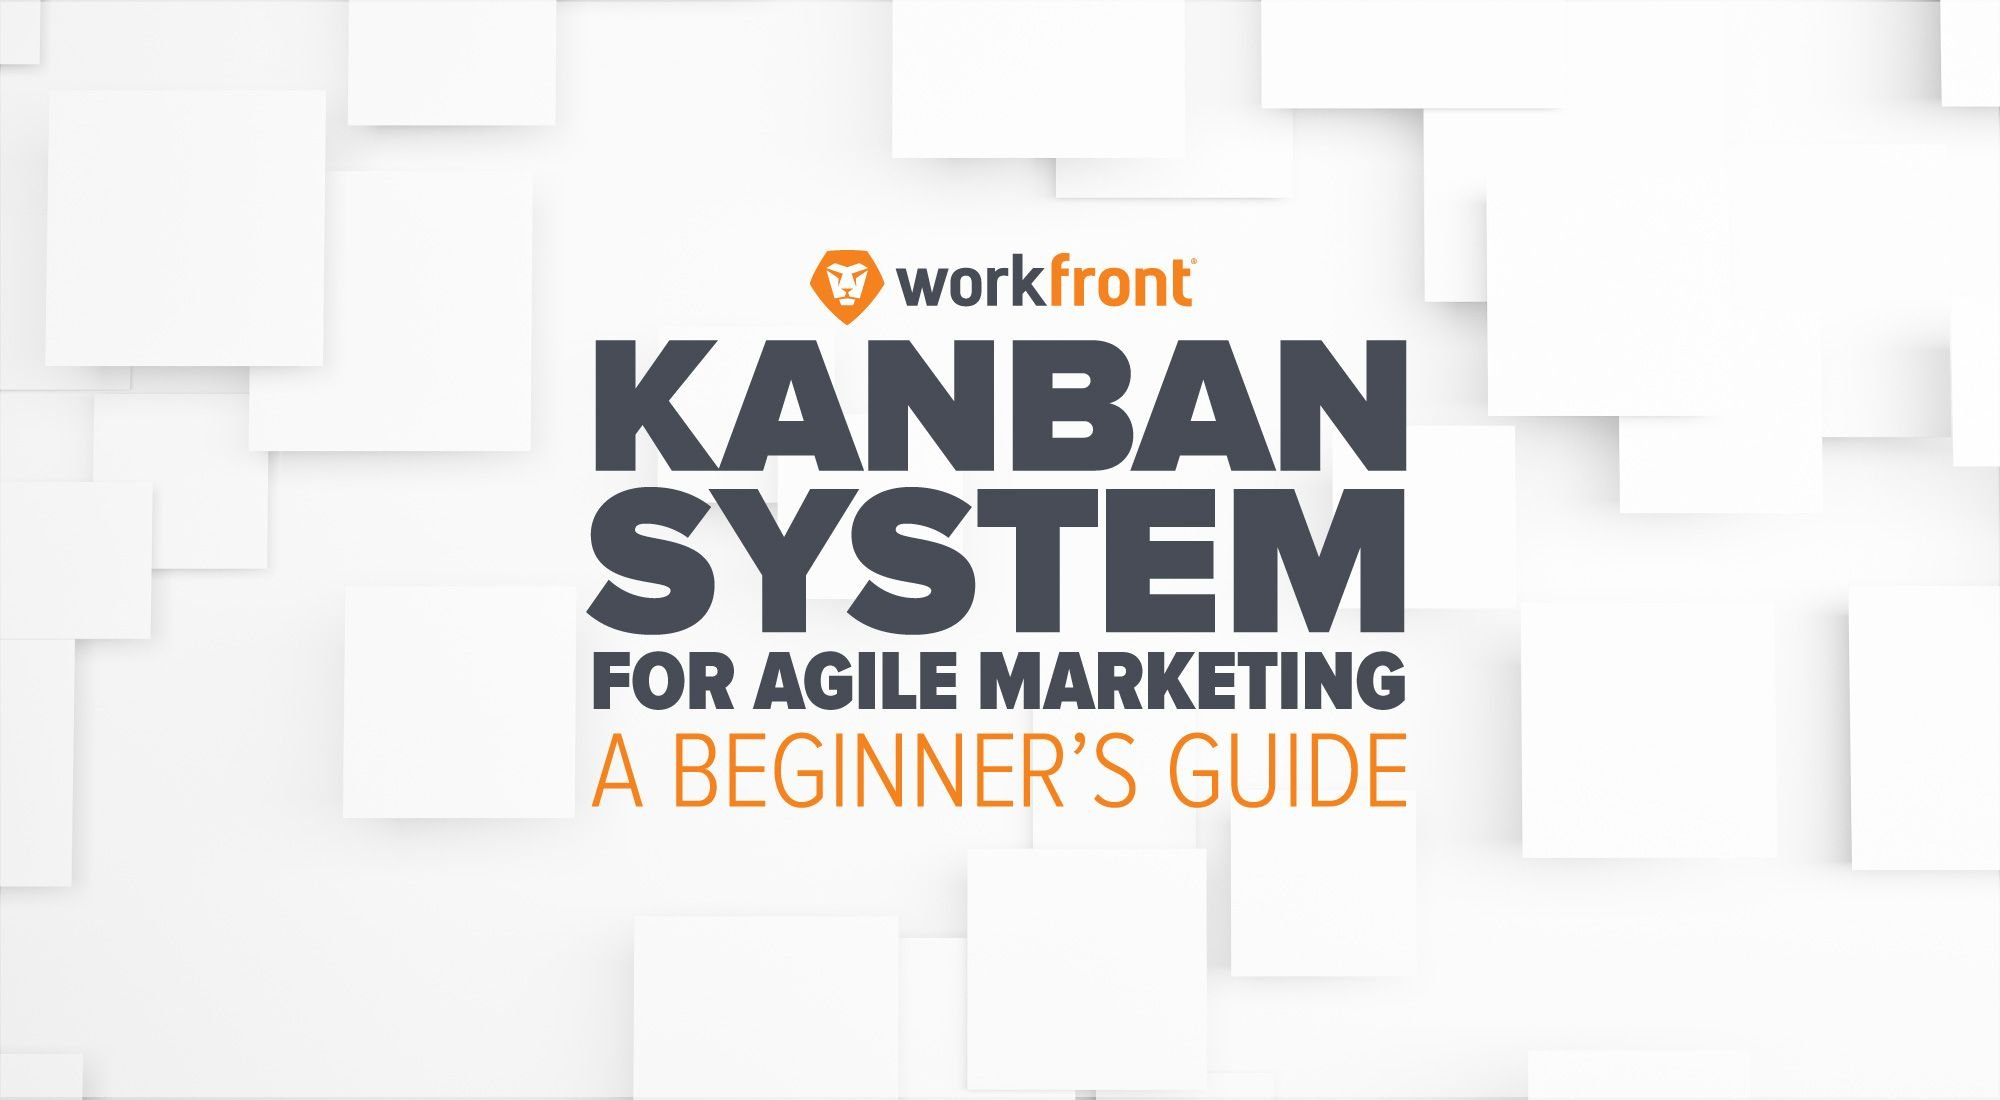 Guide to the kanban project management system